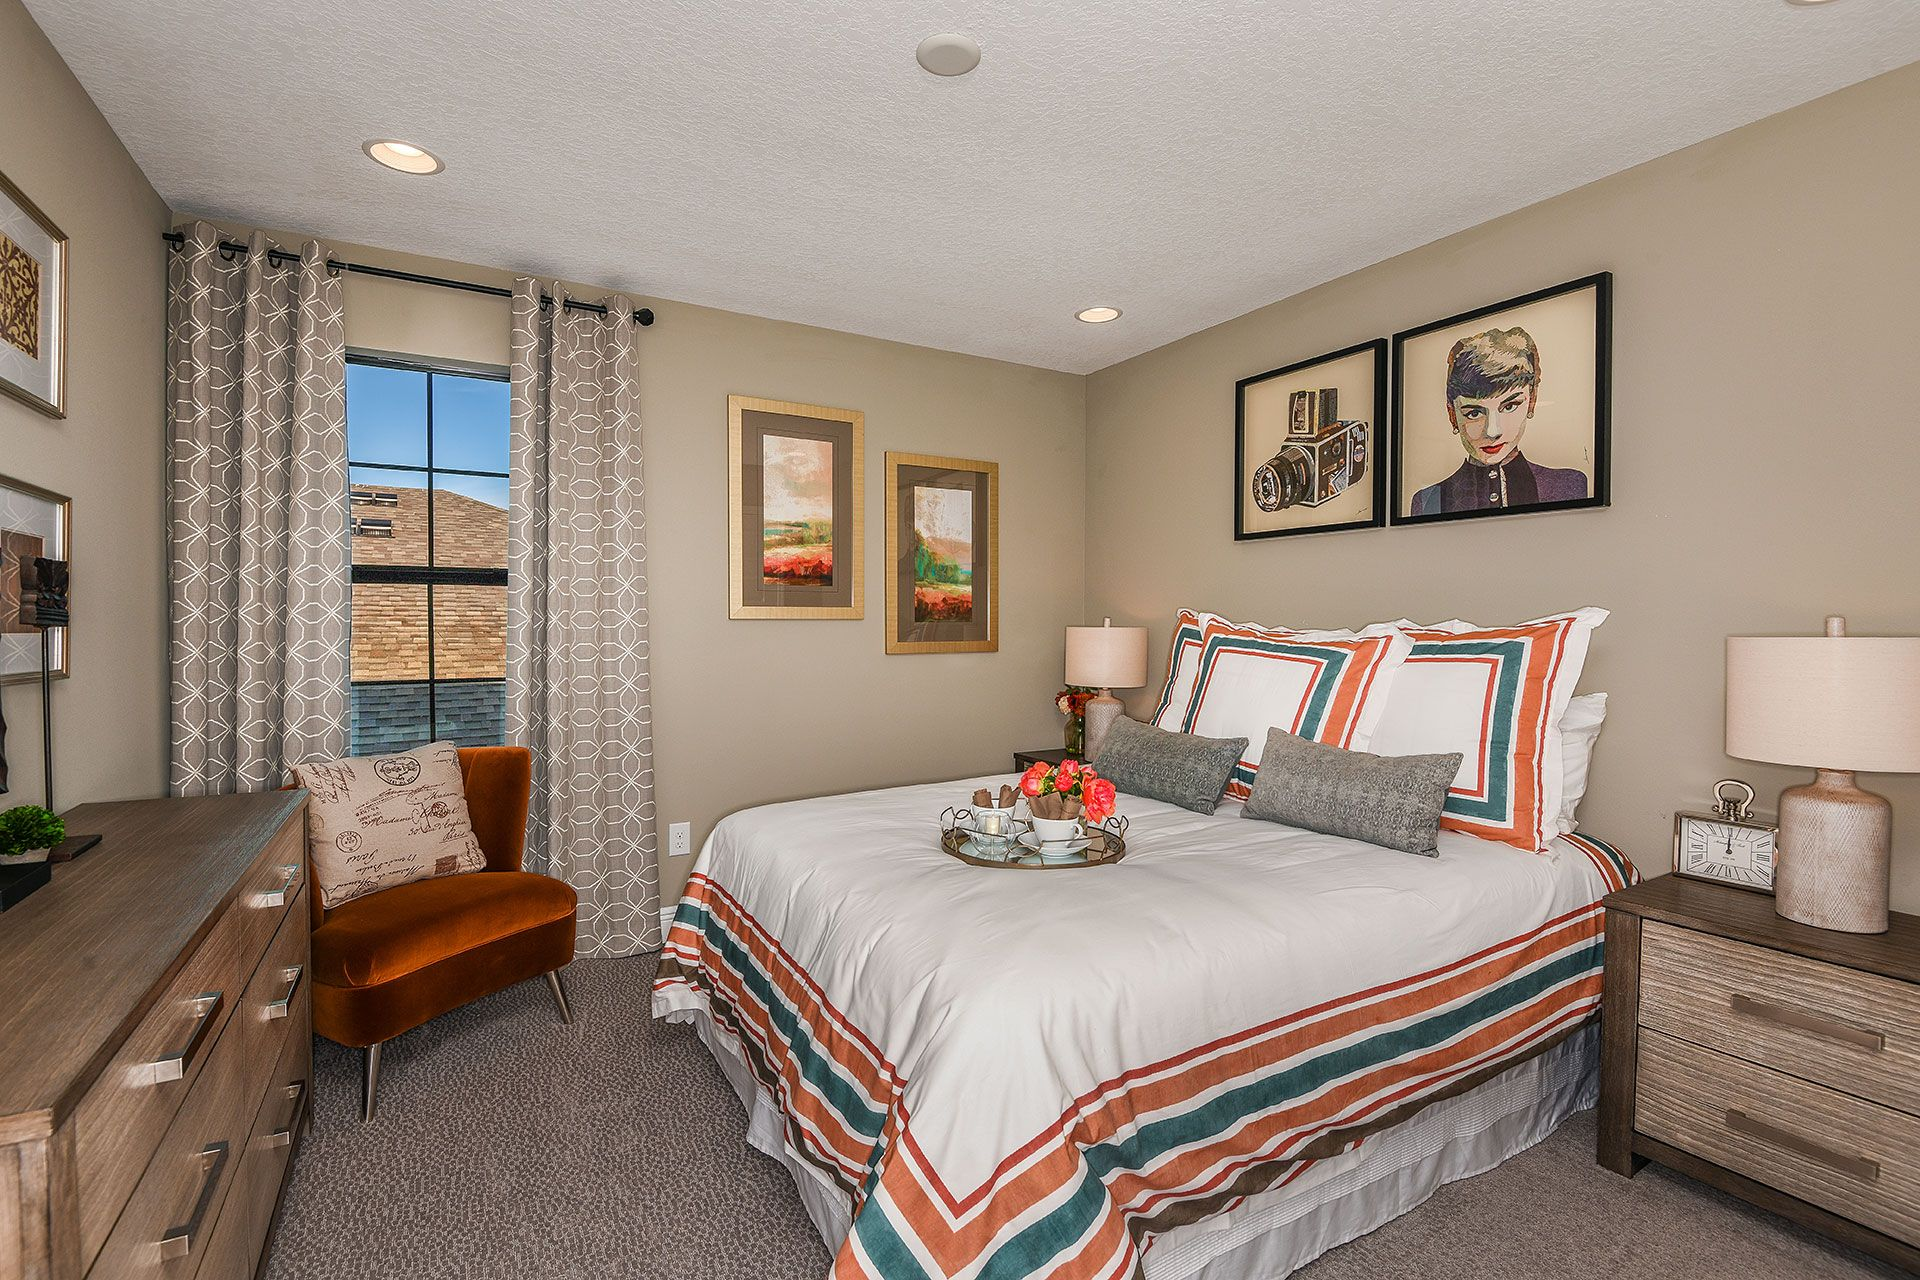 Bedroom featured in the Swann IV By Homes by WestBay in Sarasota-Bradenton, FL